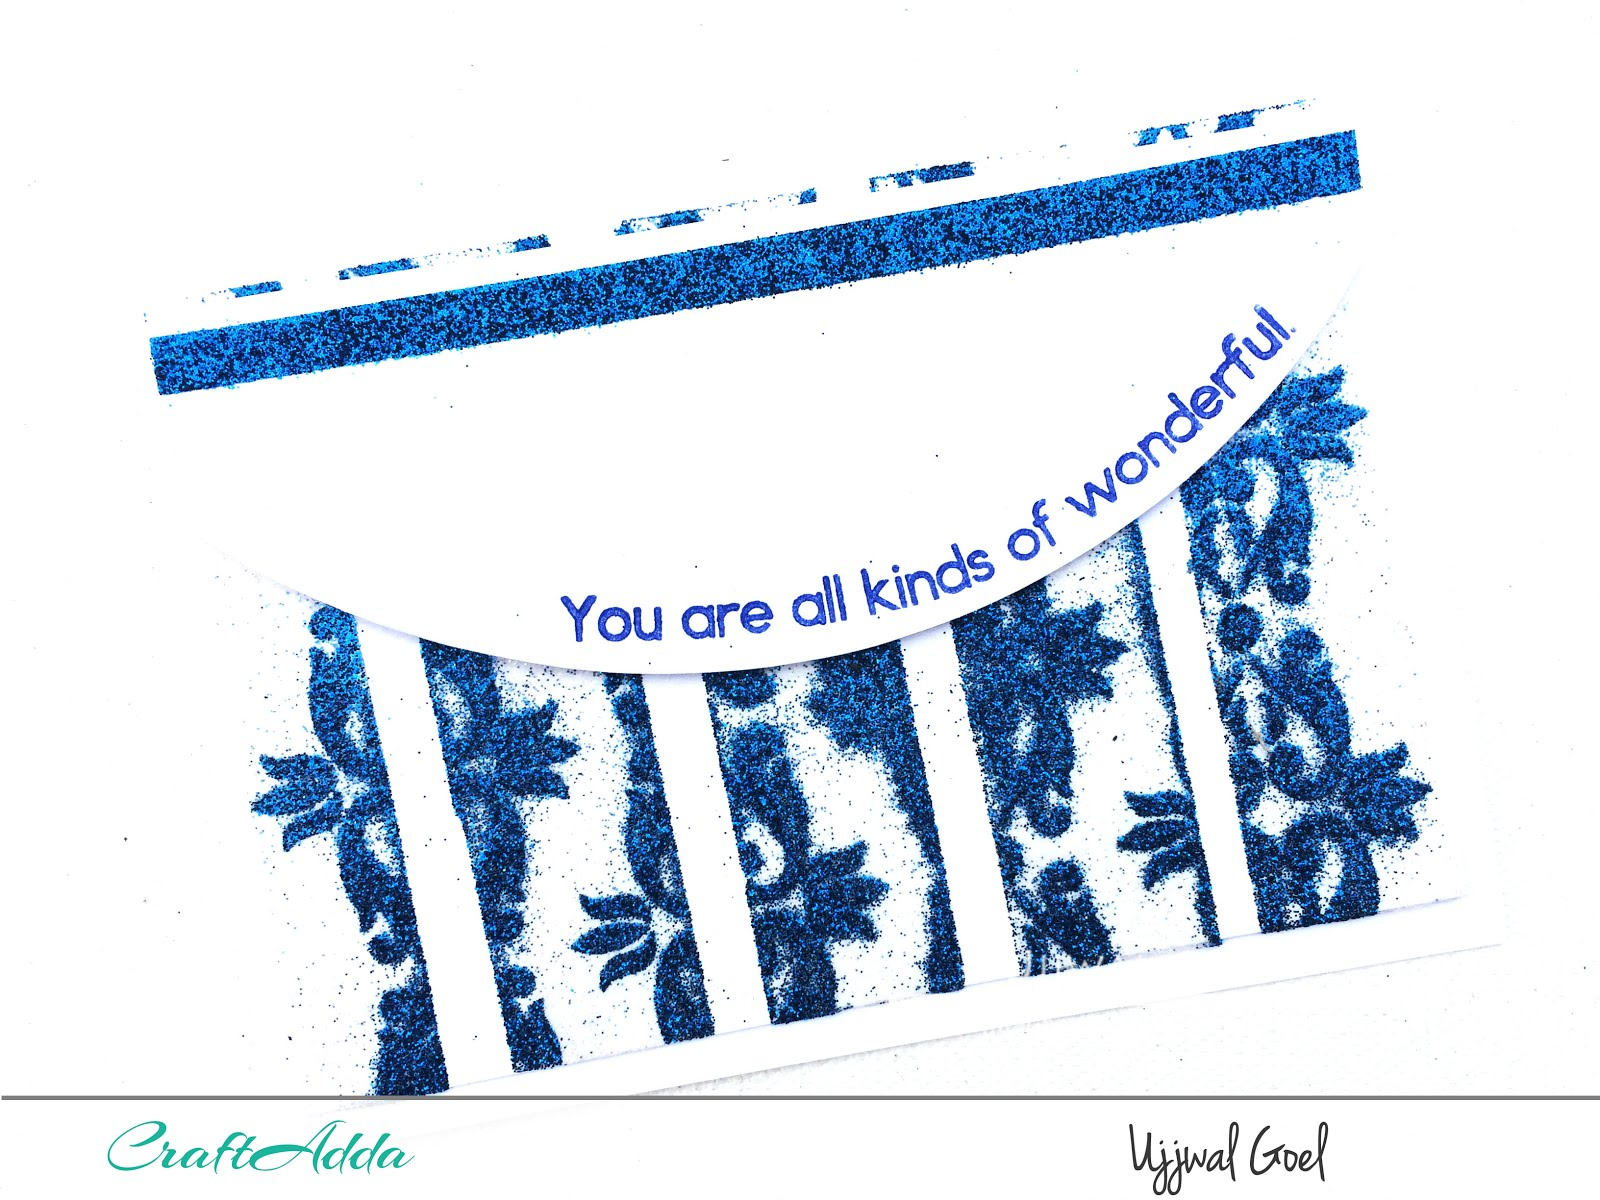 6 ways to use Stencils [Guest Post by Ujjwal] 4